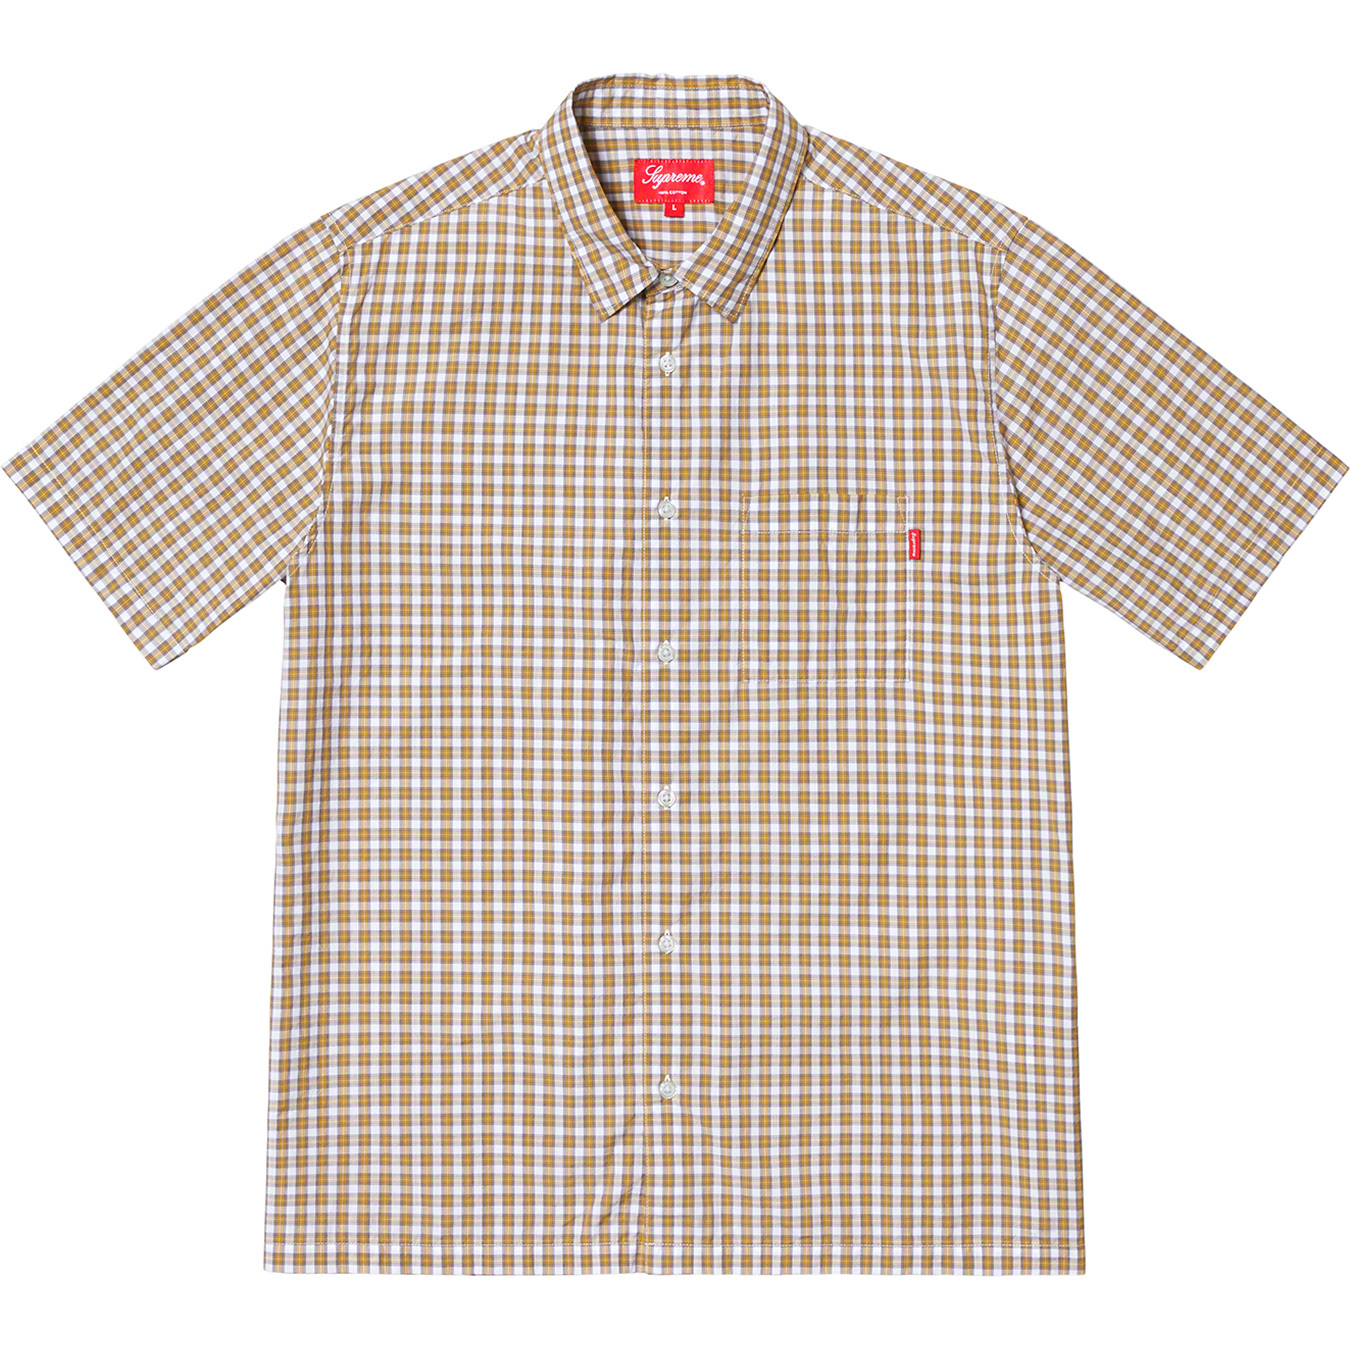 supreme-19ss-spring-summer-plaid-s-s-shirt